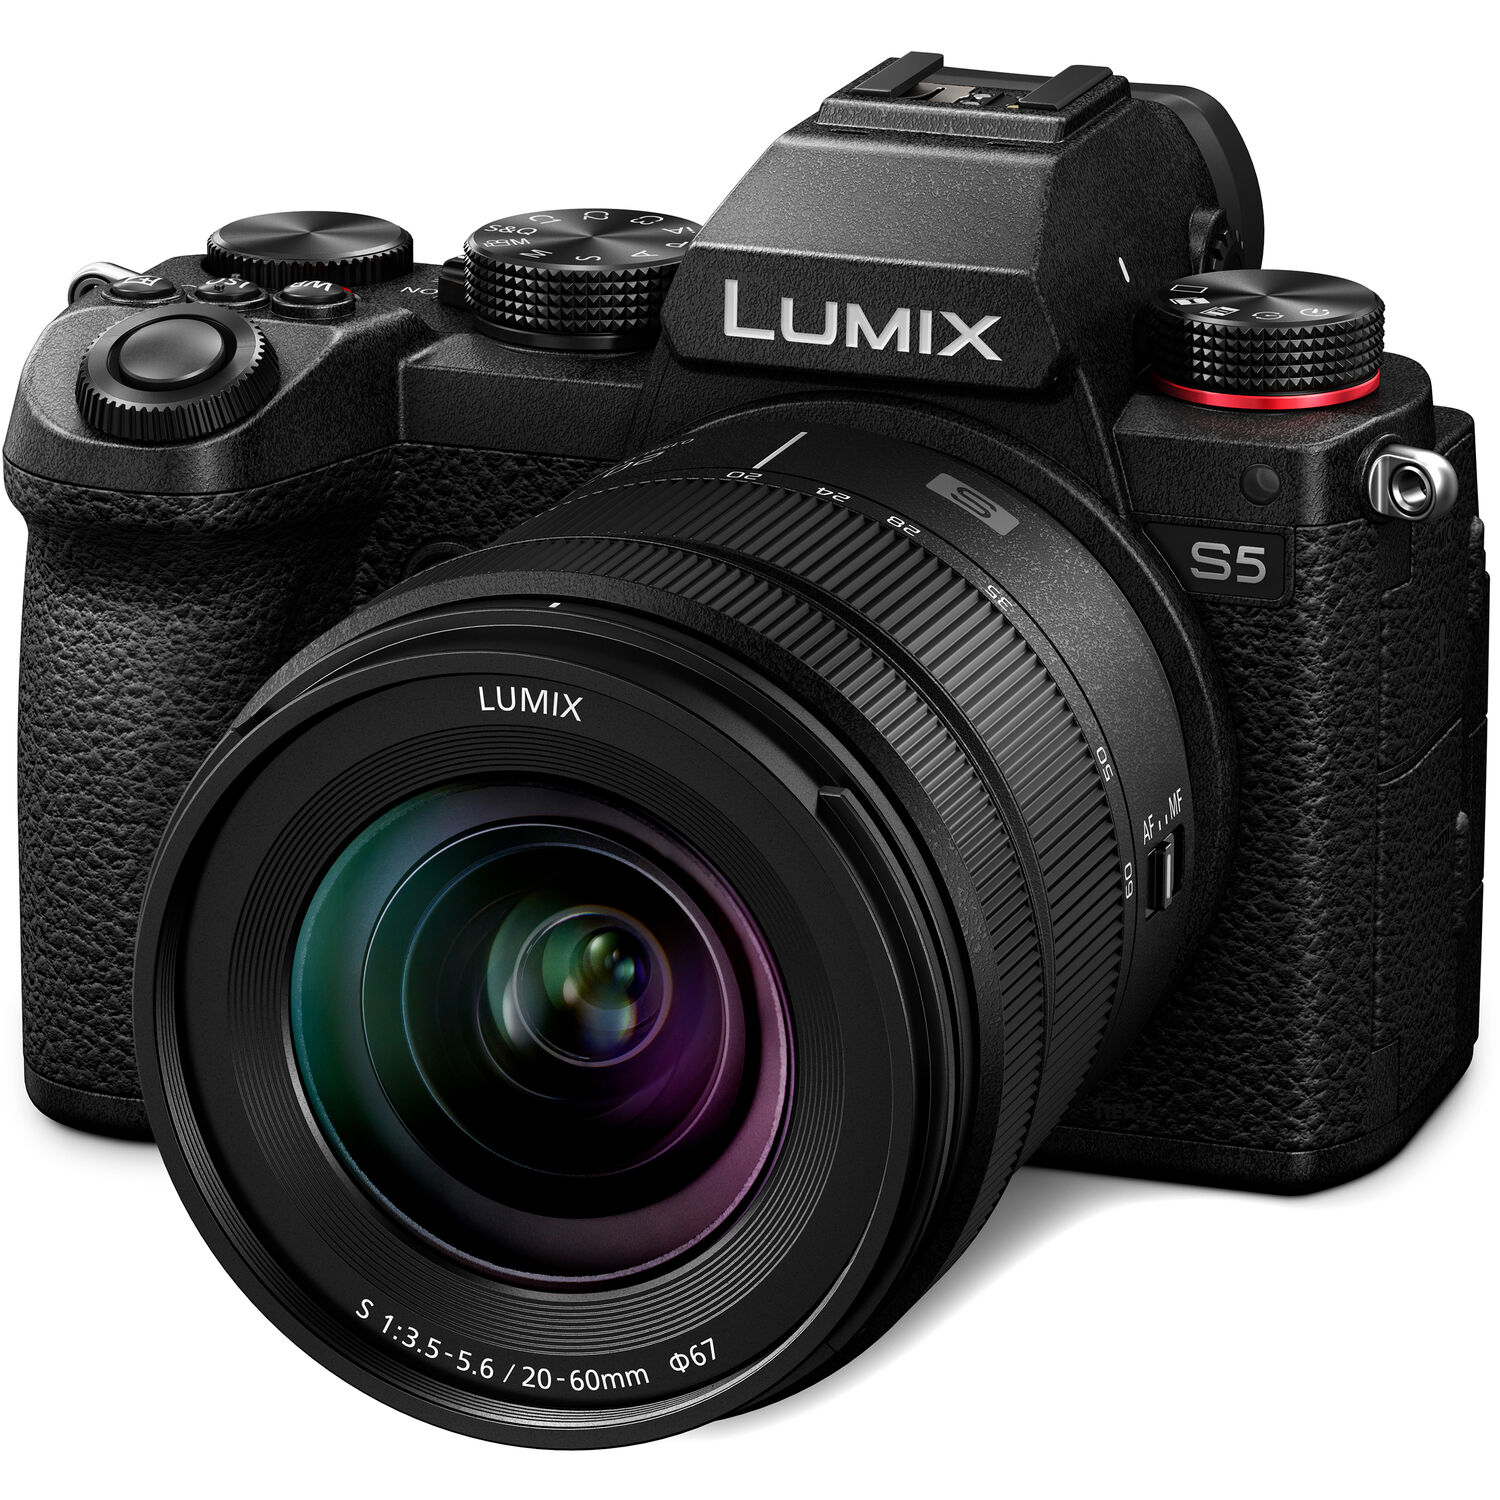 Panasonic Lumix DC-S5 (S5) Mirrorless Digital Camera KIT with 20-60mm Lens